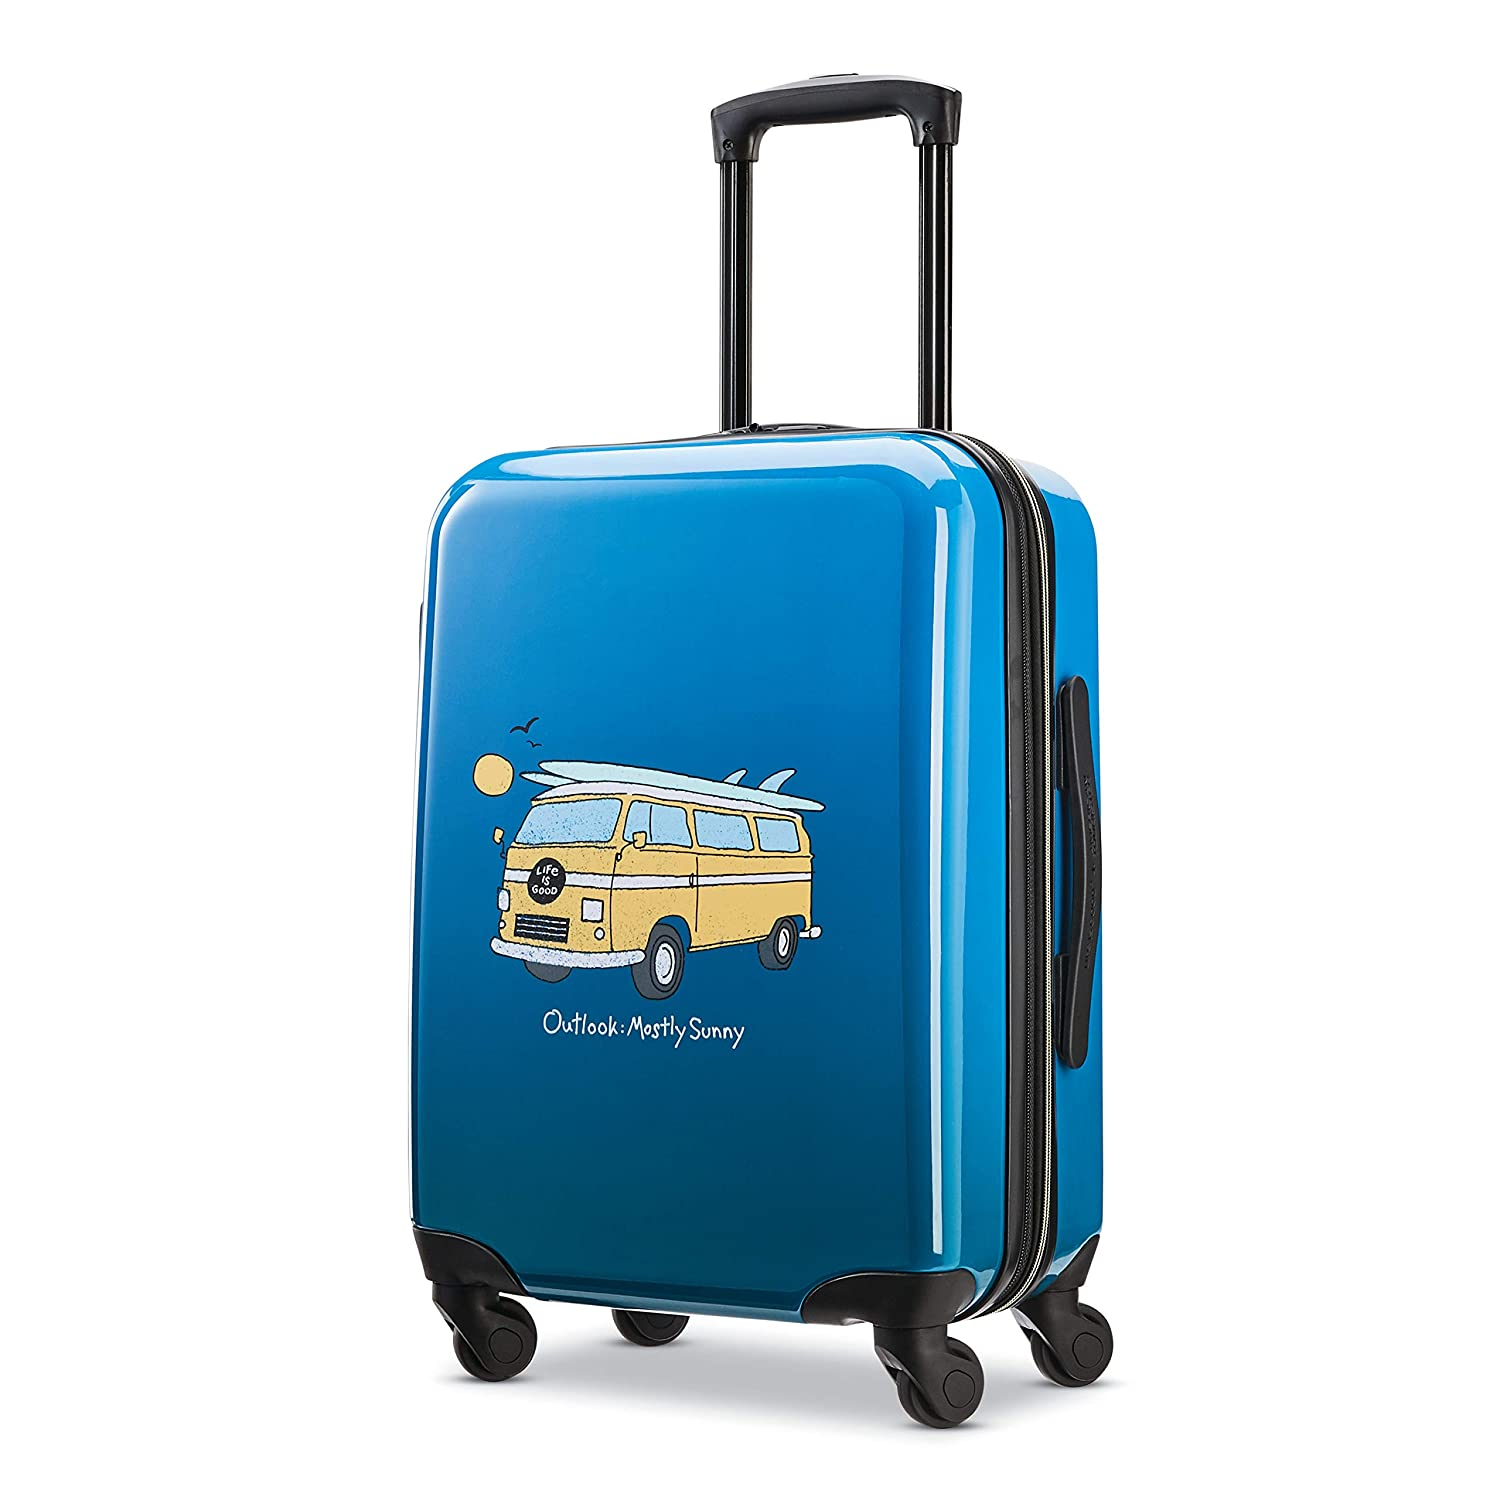 Image of American Tourister Carry-on, Van Luggage